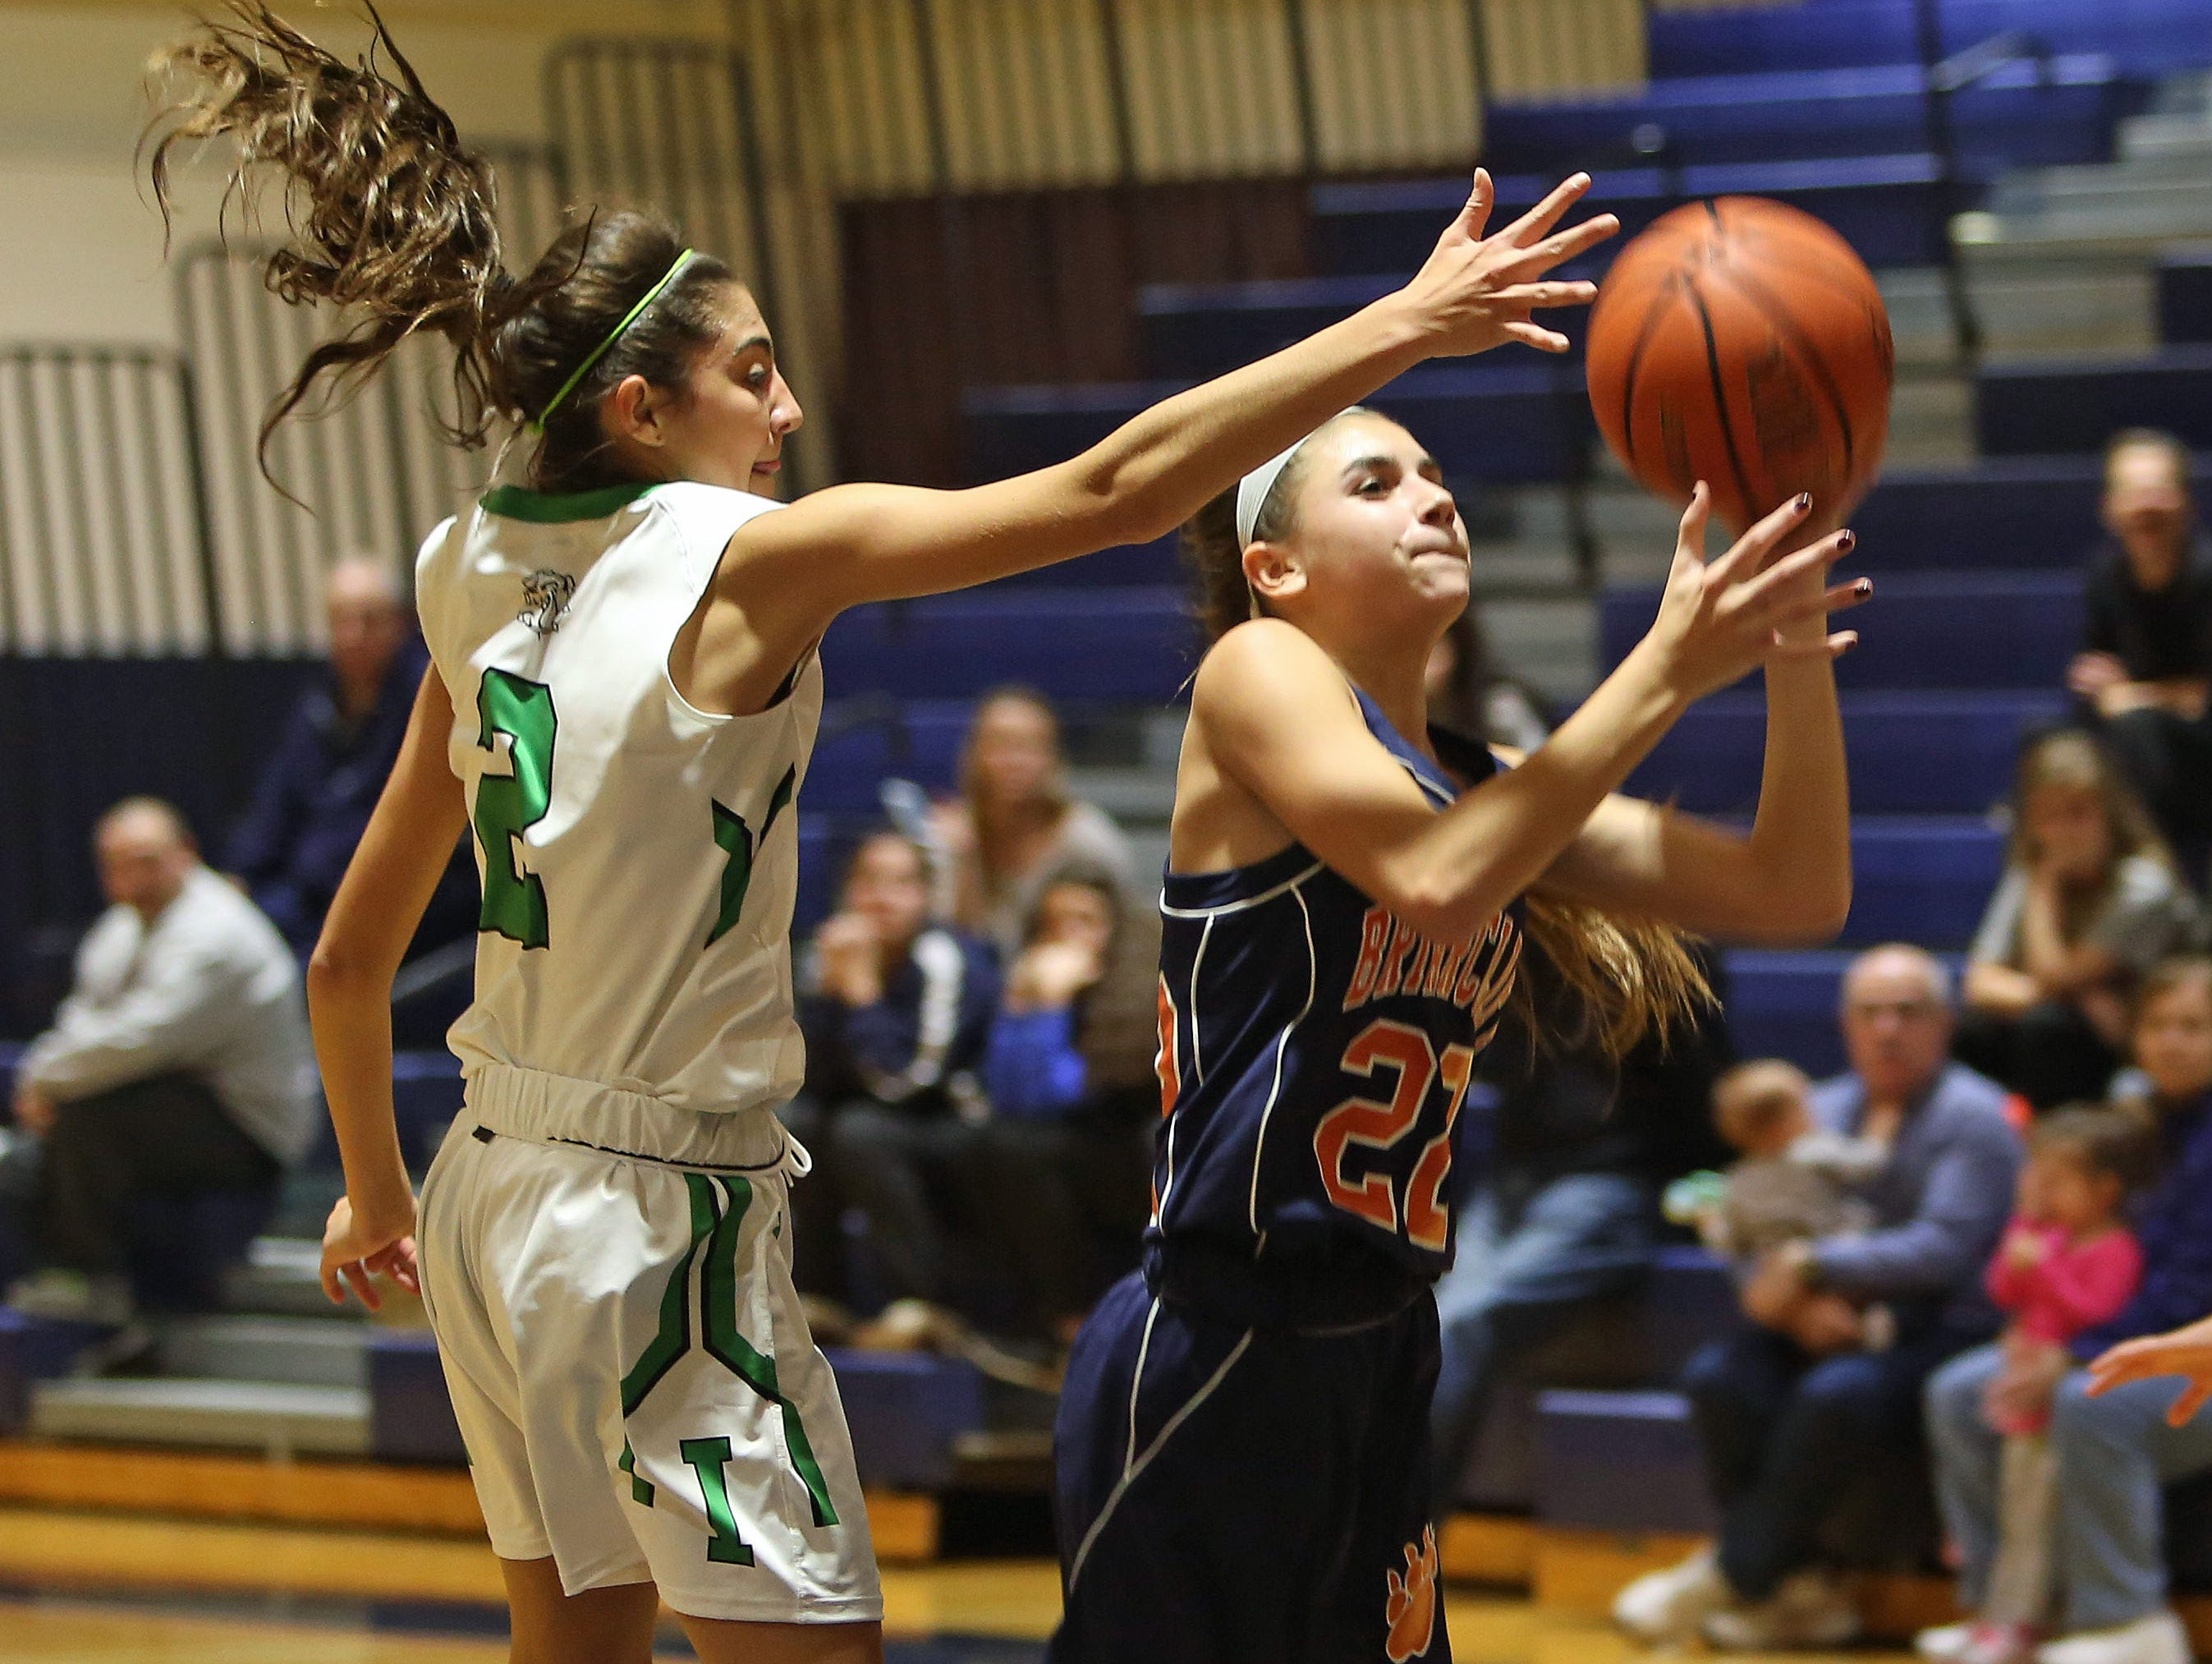 From left, Irvington's Olivia Valdes (2) puts pressure on Briarcliff's Mia Persico (22) during girls basketball action at Briarcliff High School Dec. 1, 2015. Irvington won the game 71-57.